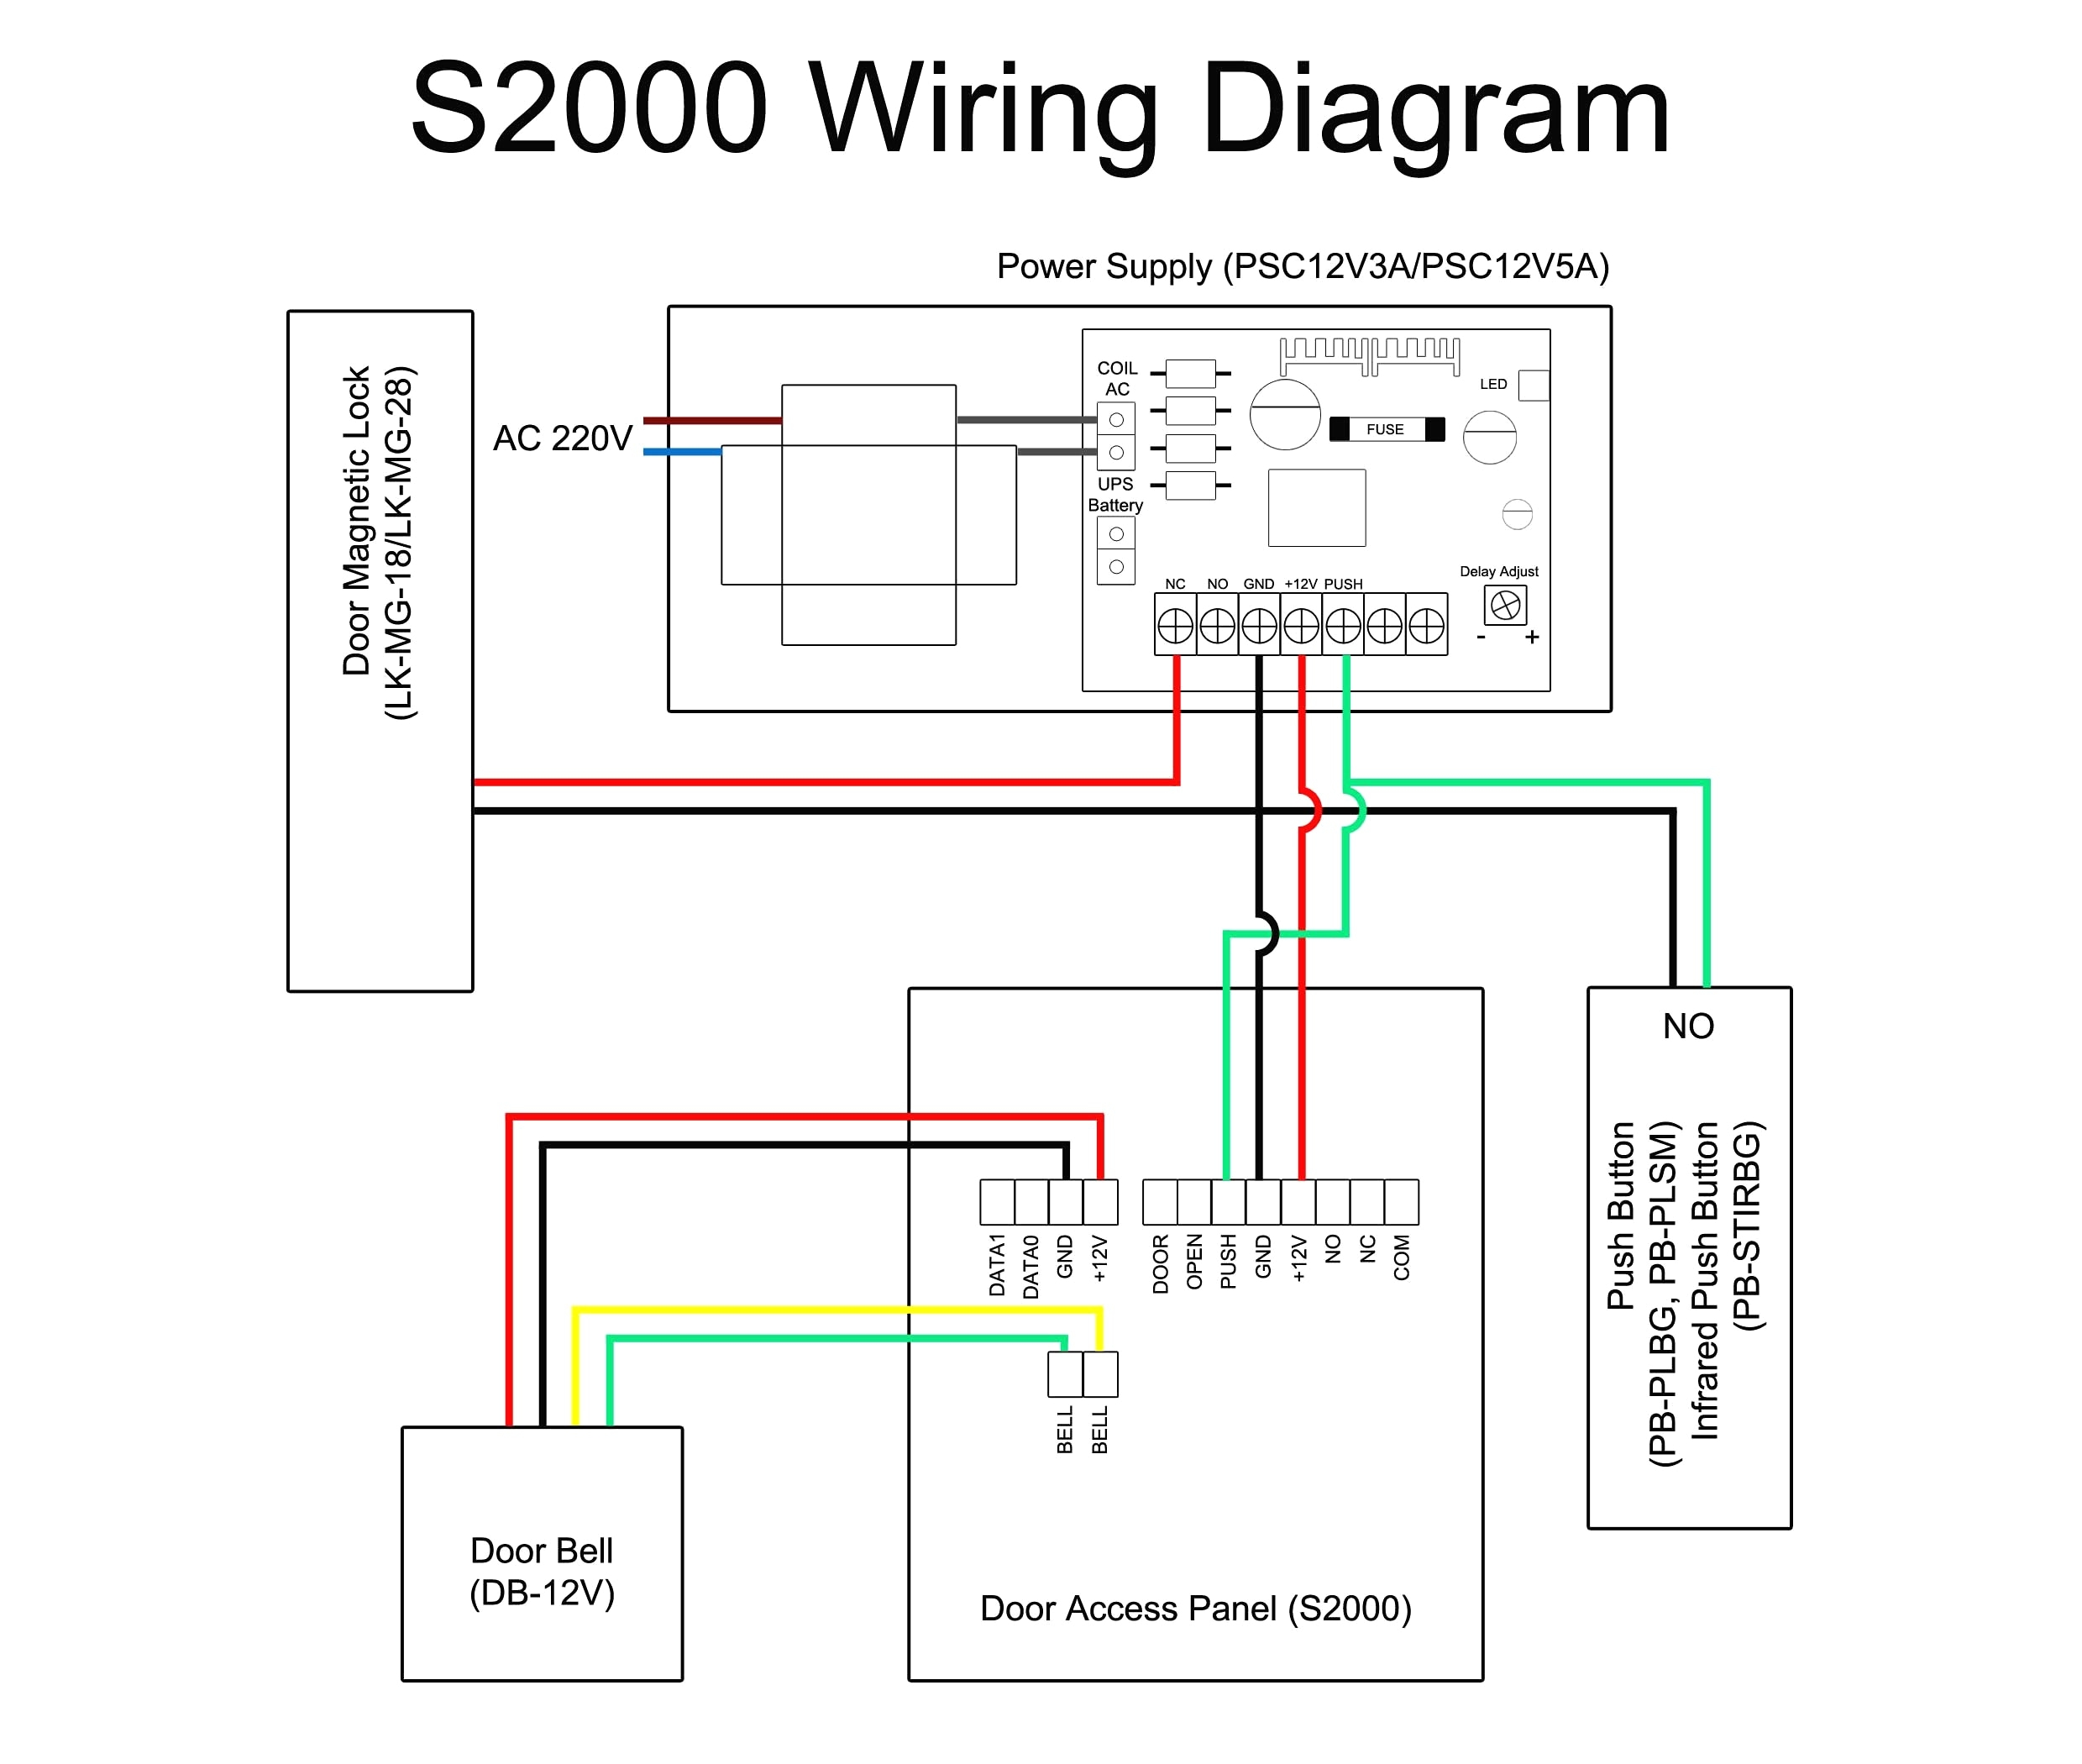 poe camera wiring diagram Download-Cmos Camera Wiring Diagram Samsung Security For In Wiring Diagram And In Cmos Camera Wiring Diagram 20-t